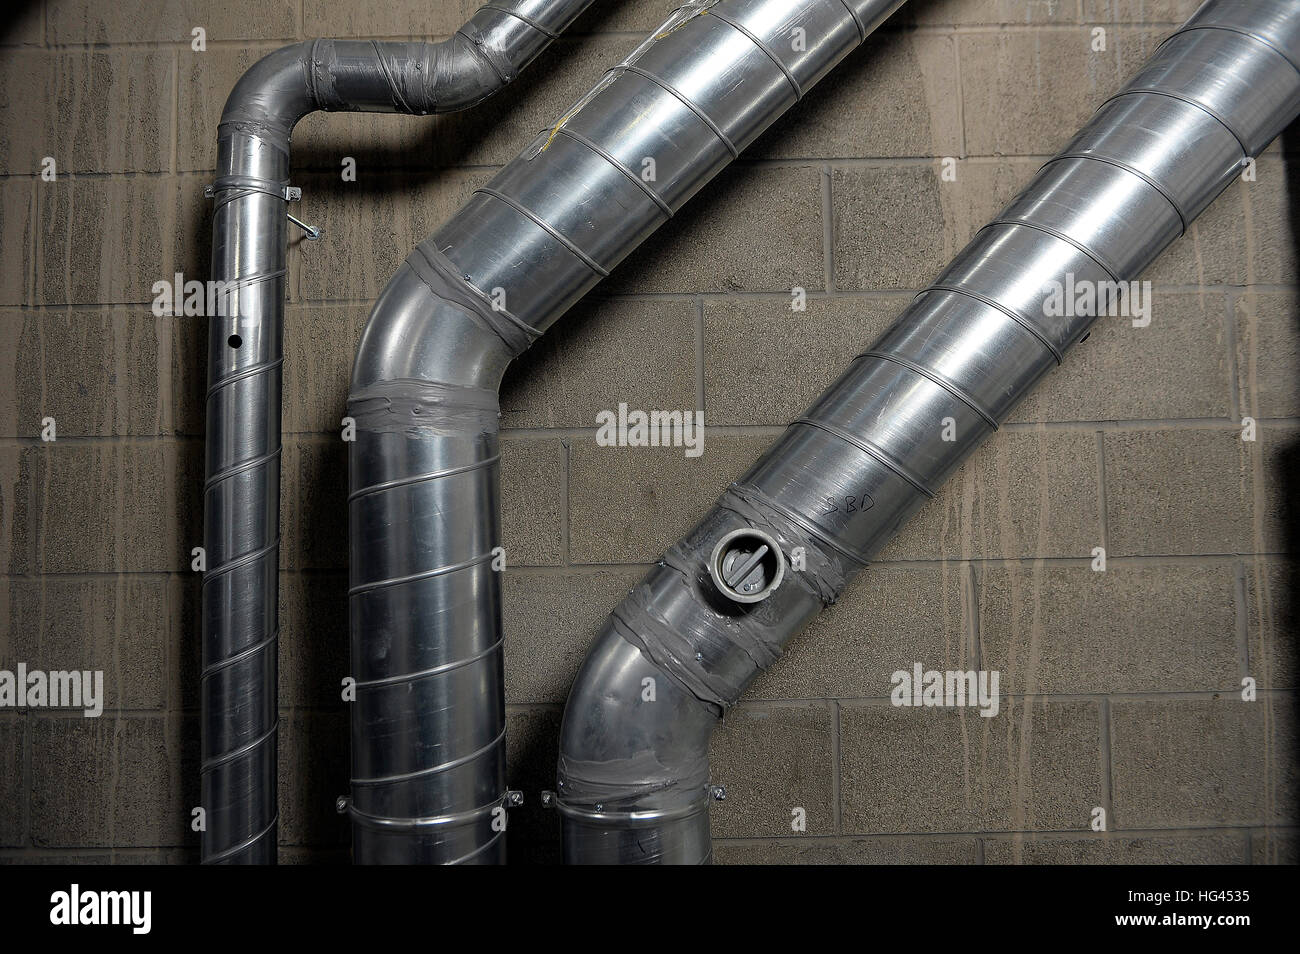 Industrial aluminium air conditioning pipes mounted on a breeze block wall. - Stock Image